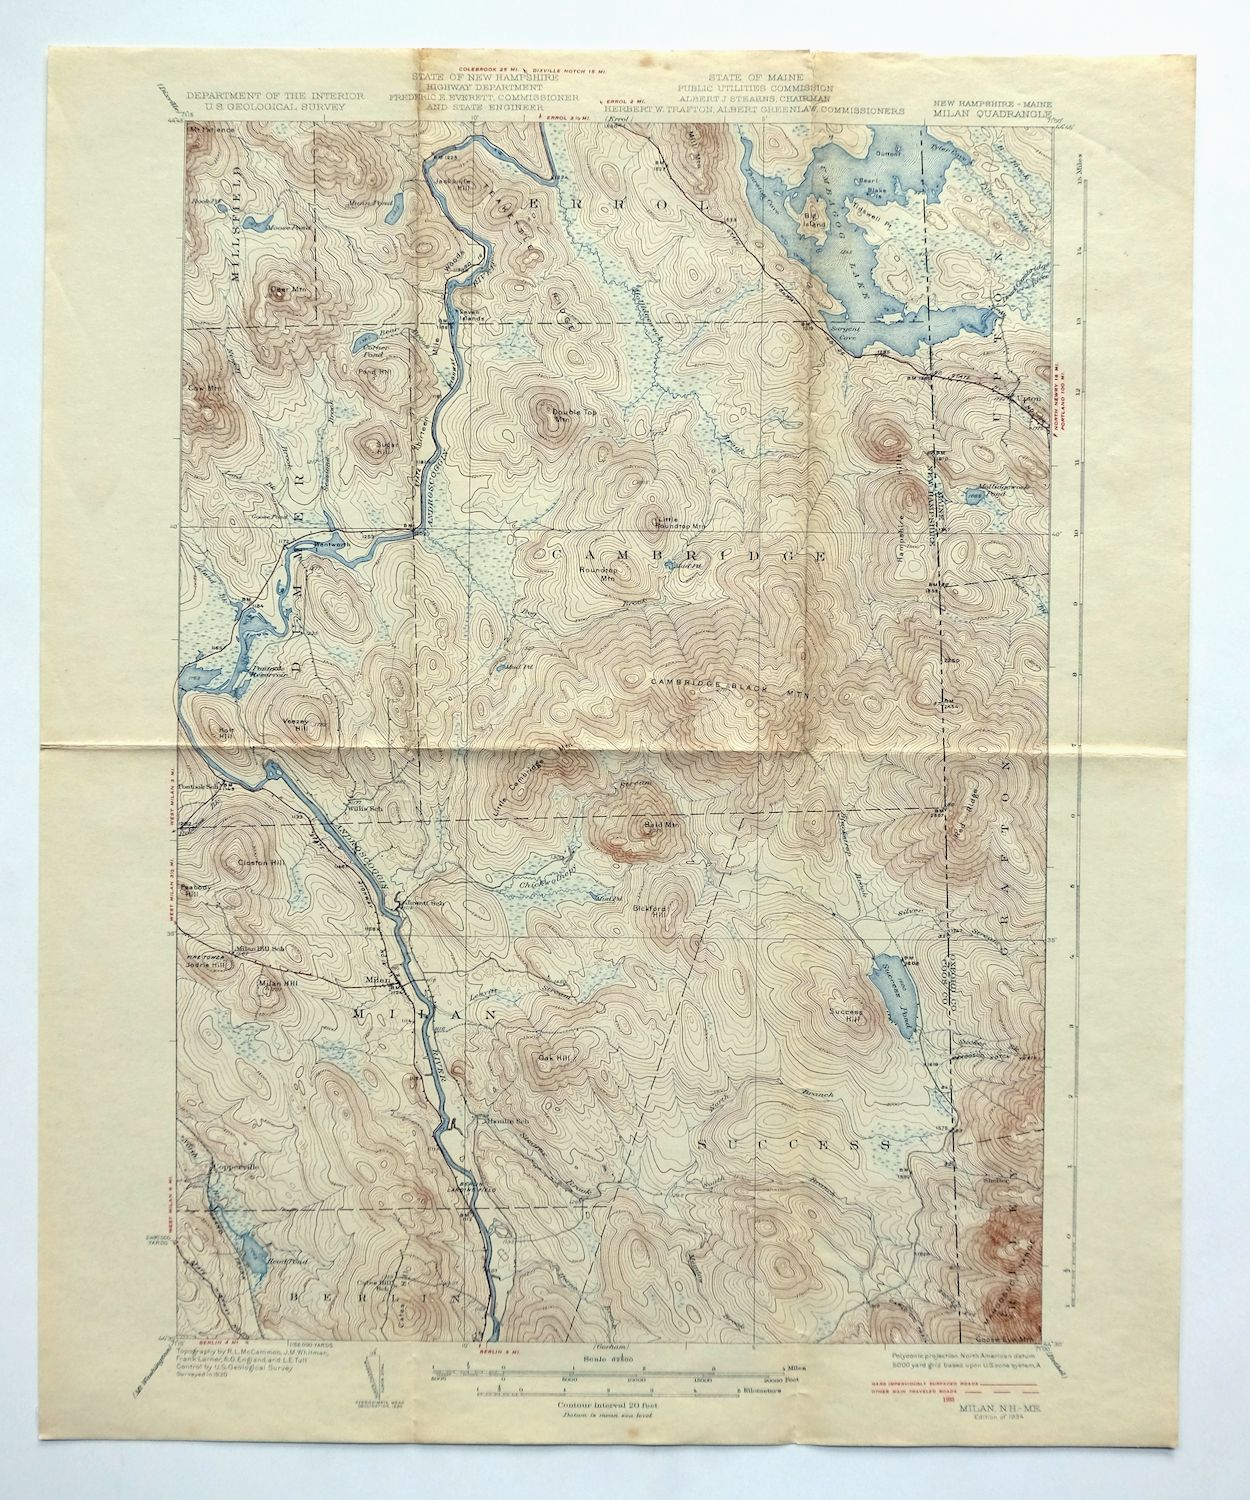 Details about Milan New Hampshire Maine Vintage Original 1934 USGS  Topographic Map Berlin Topo